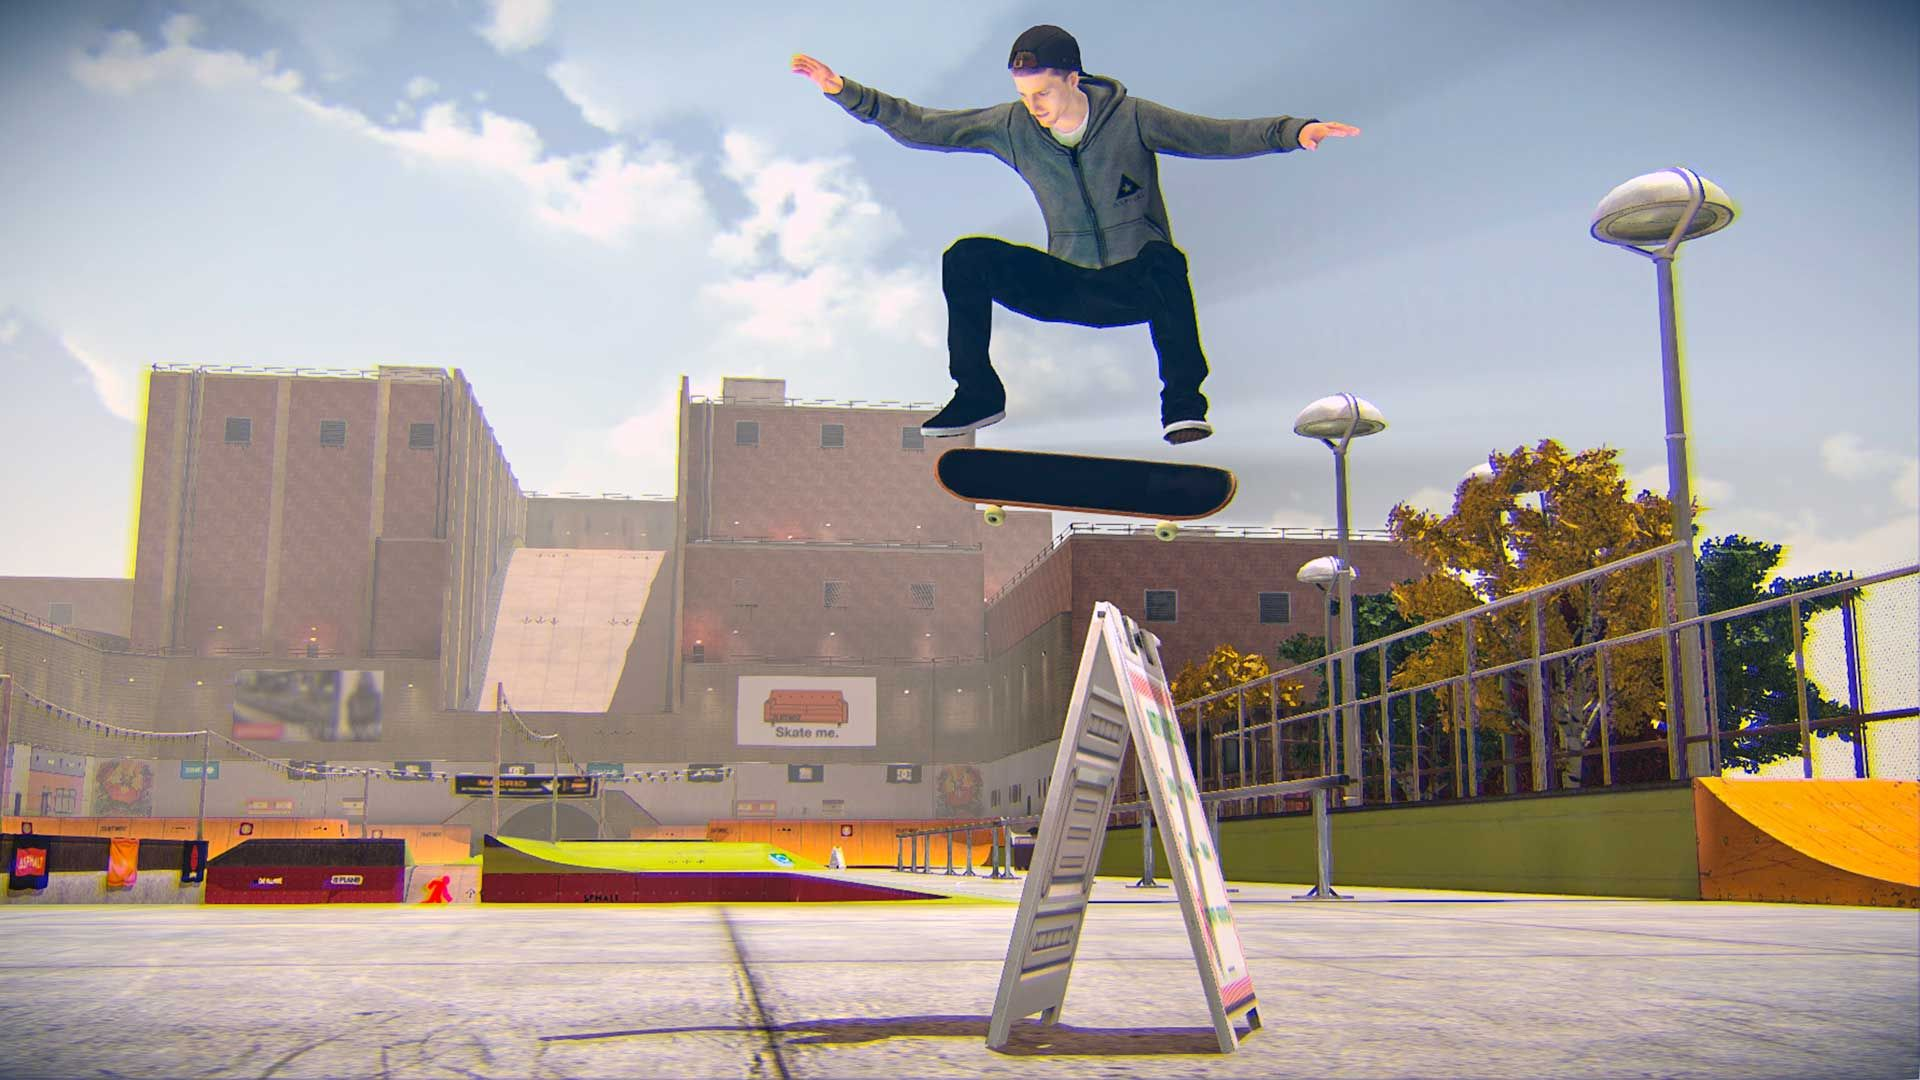 Tony Hawk's Pro Skater 5 (PS4) - a real grind